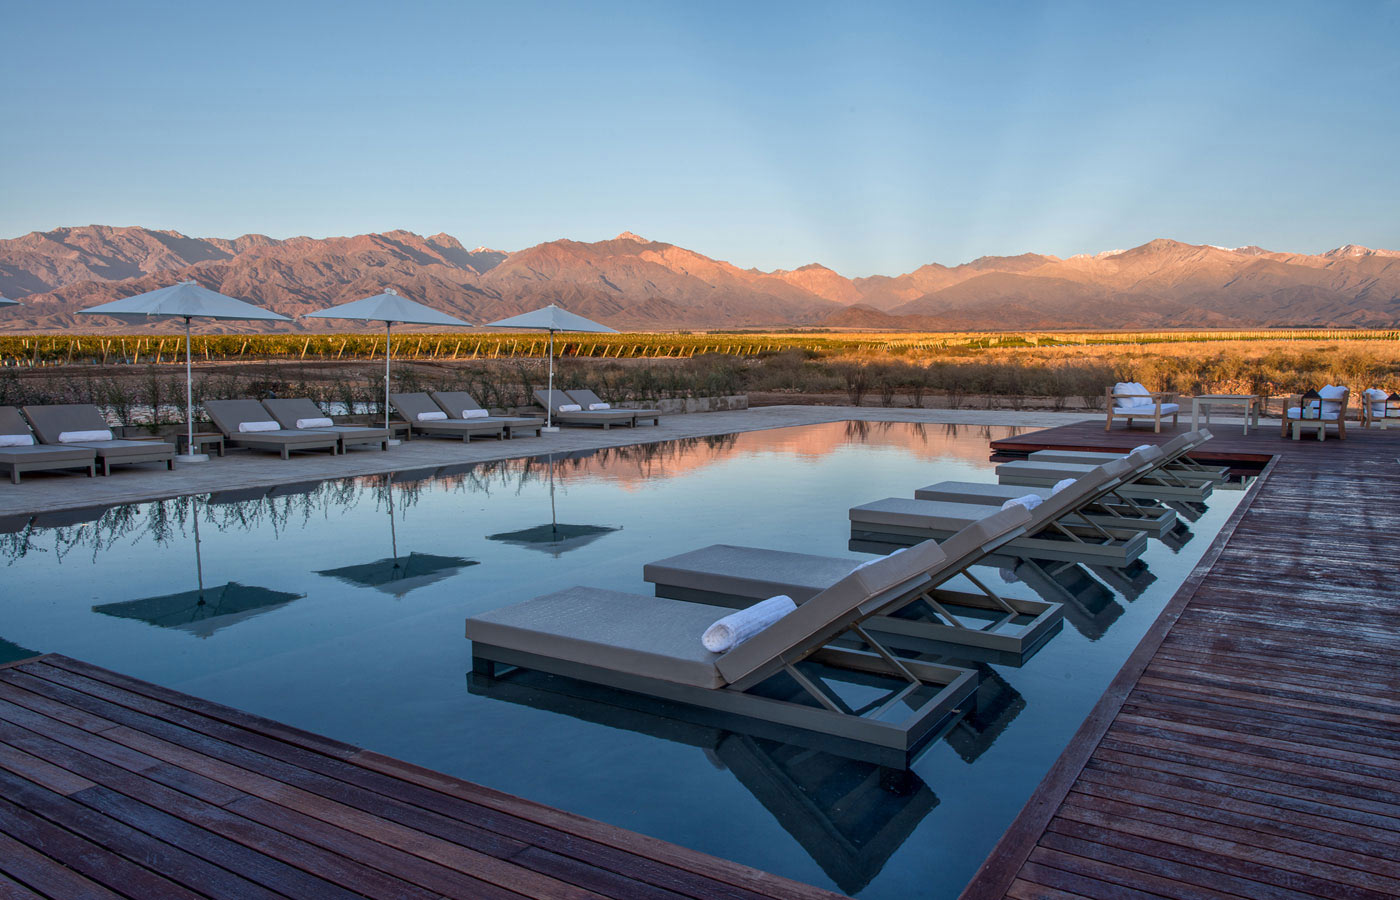 The Vines of Mendoza is one of the region's standout properties, offering a sleek and modern guest experience in this picturesque setting.